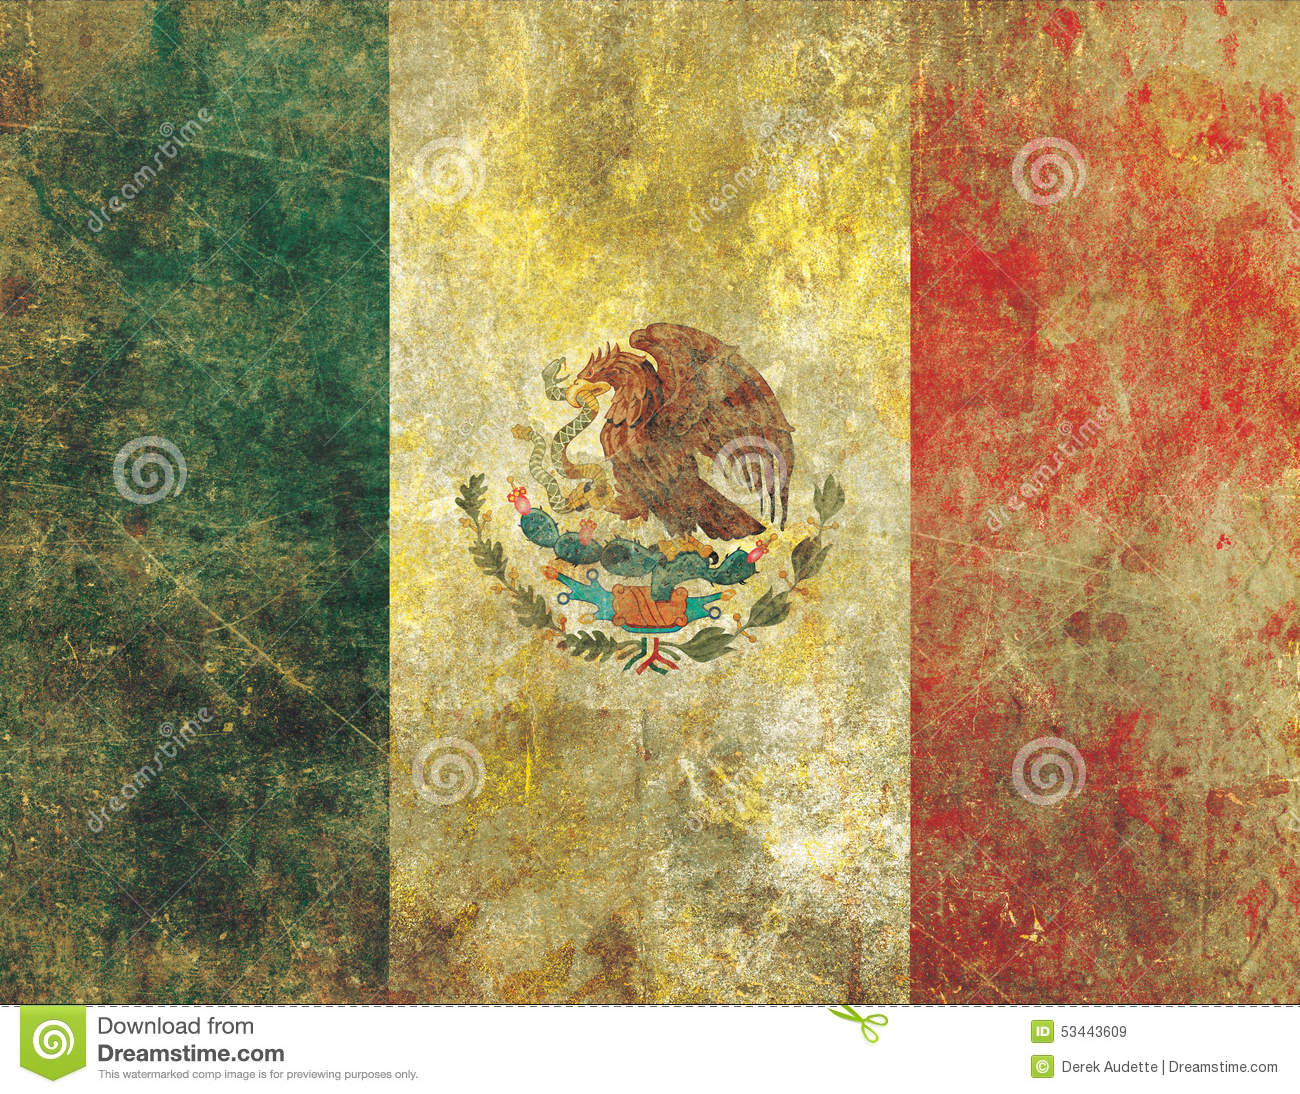 damaged and faded old grunge style mexican flag stock illustration